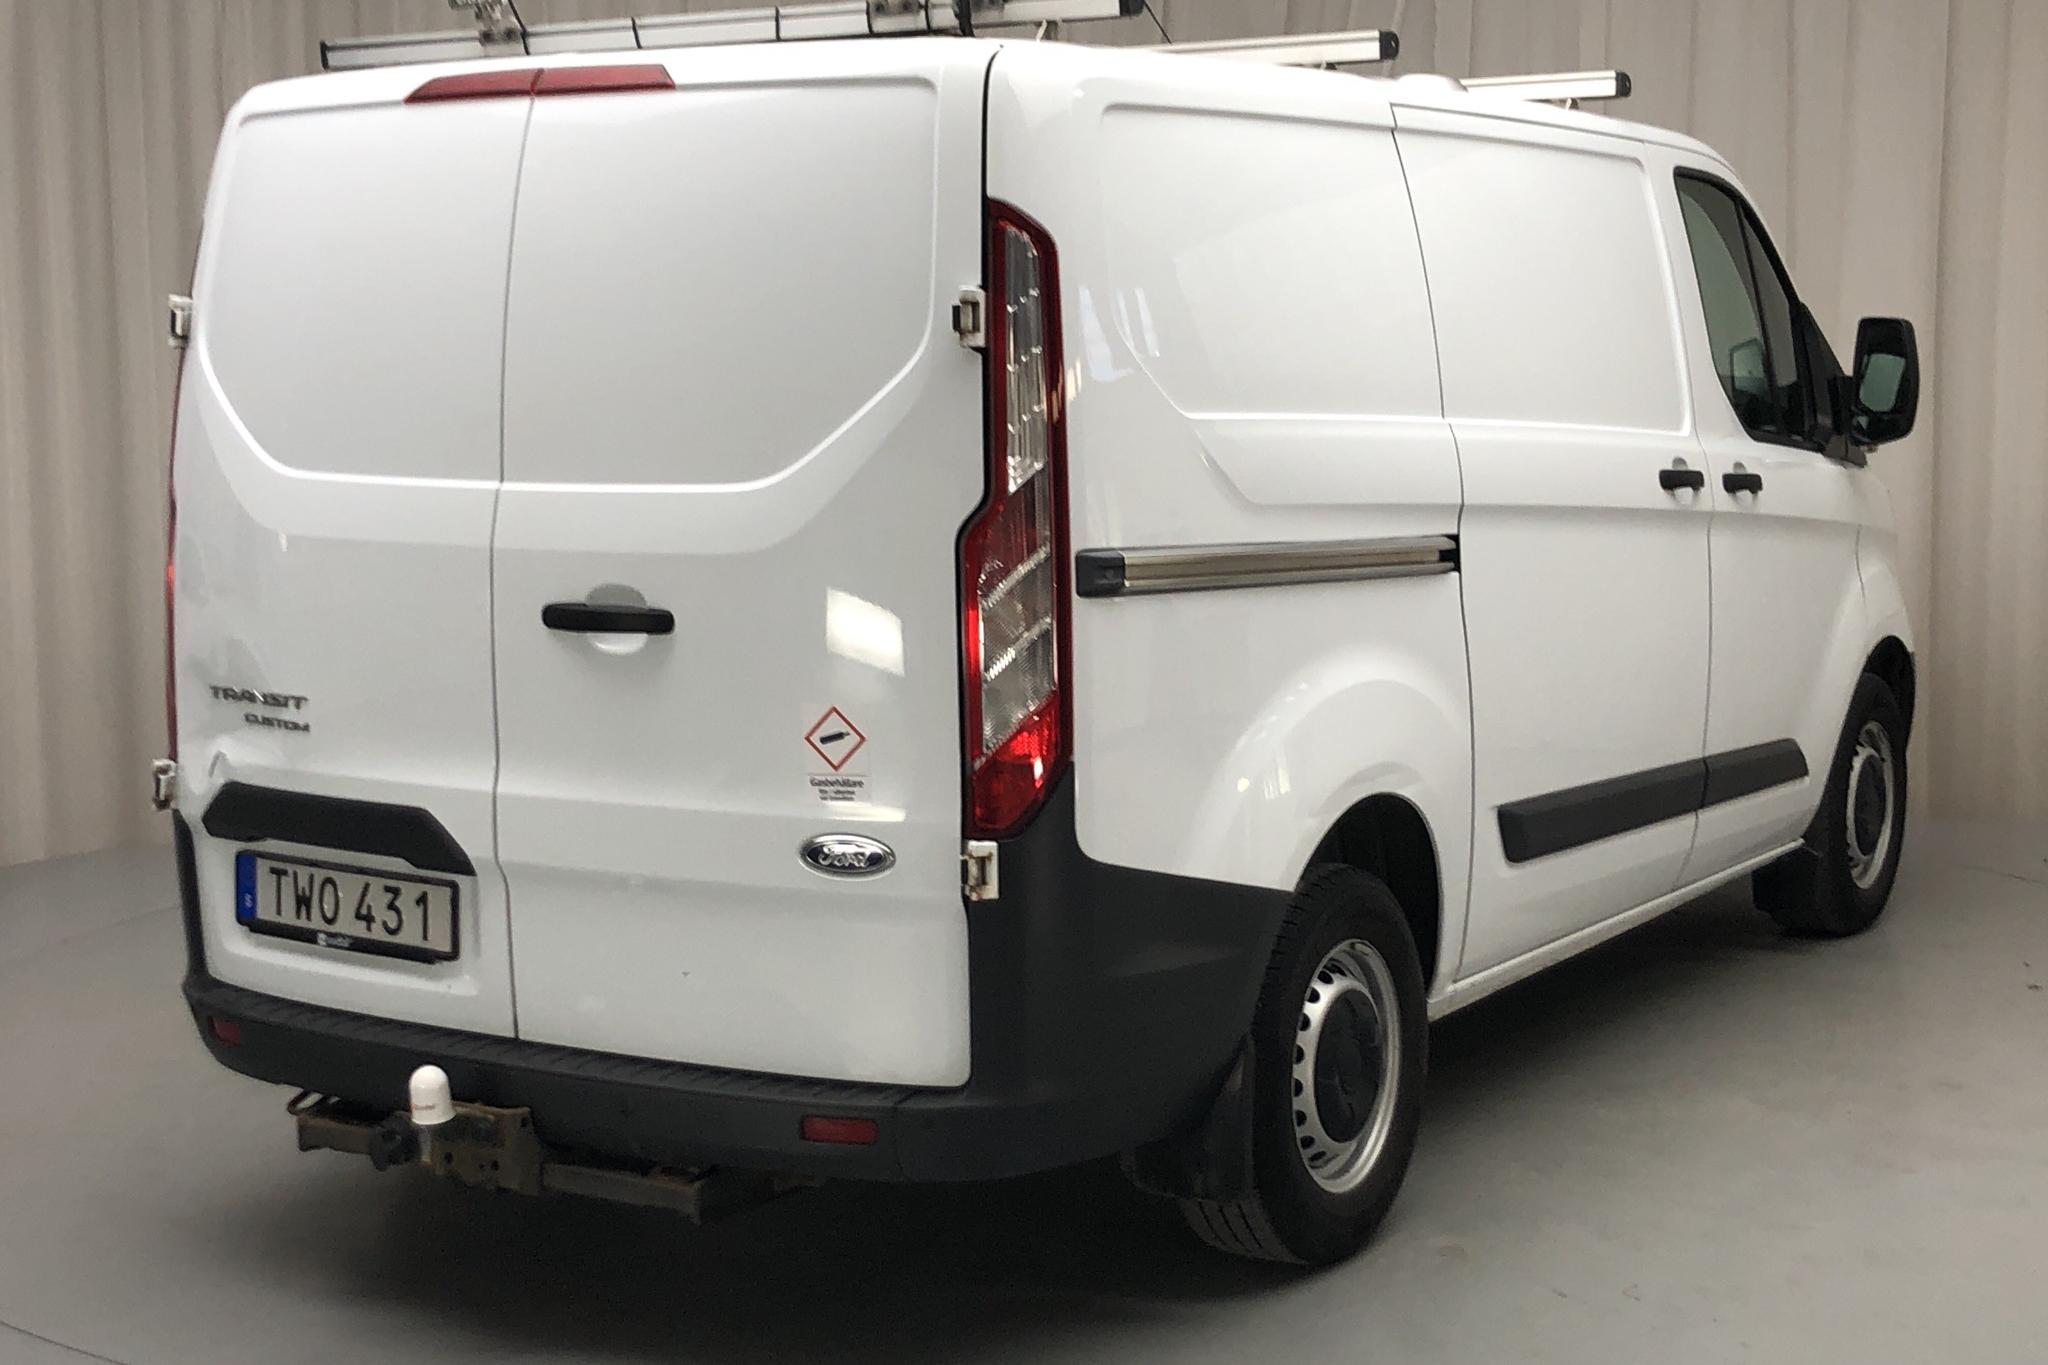 Ford Transit Custom 270 (100hk) - 87 280 km - Manual - white - 2015